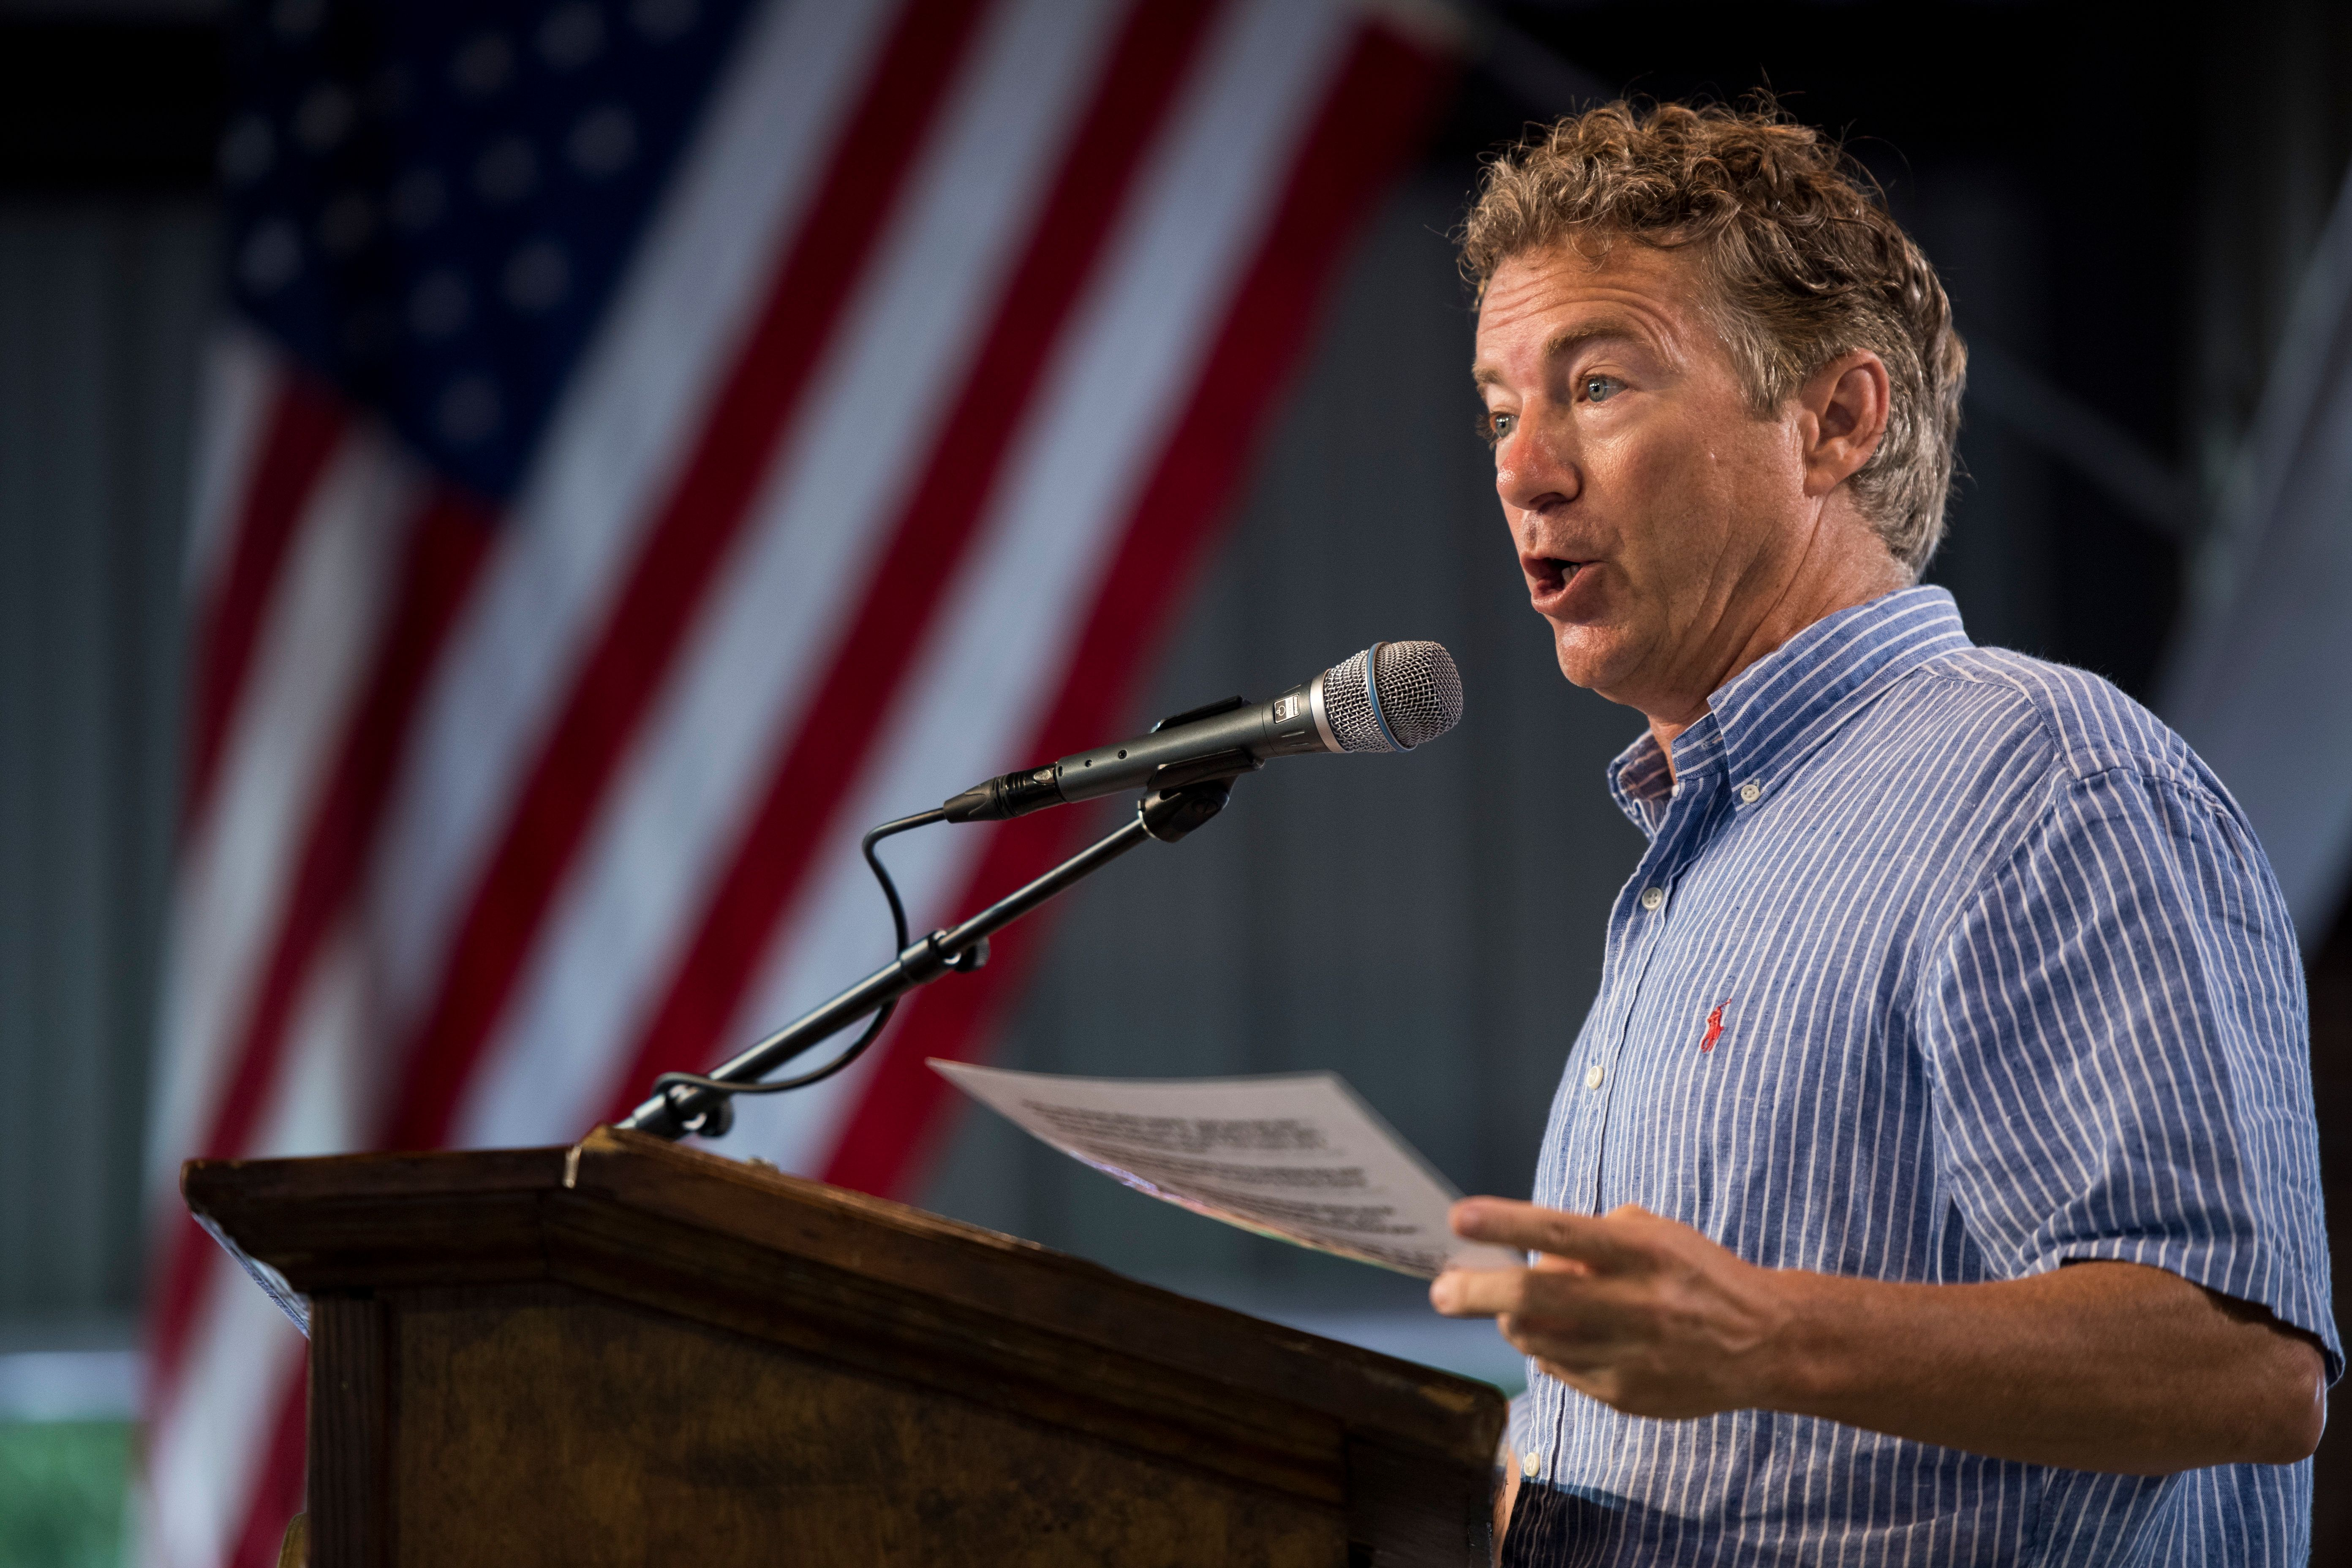 UNITED STATES - AUGUST 6: Sen. Rand Paul (R-KY) speaks at the annual Fancy Farm Picnic in Fancy Farm, Ky., on Saturday, Aug. 6, 2016. (Photo By Bill Clark/CQ Roll Call)